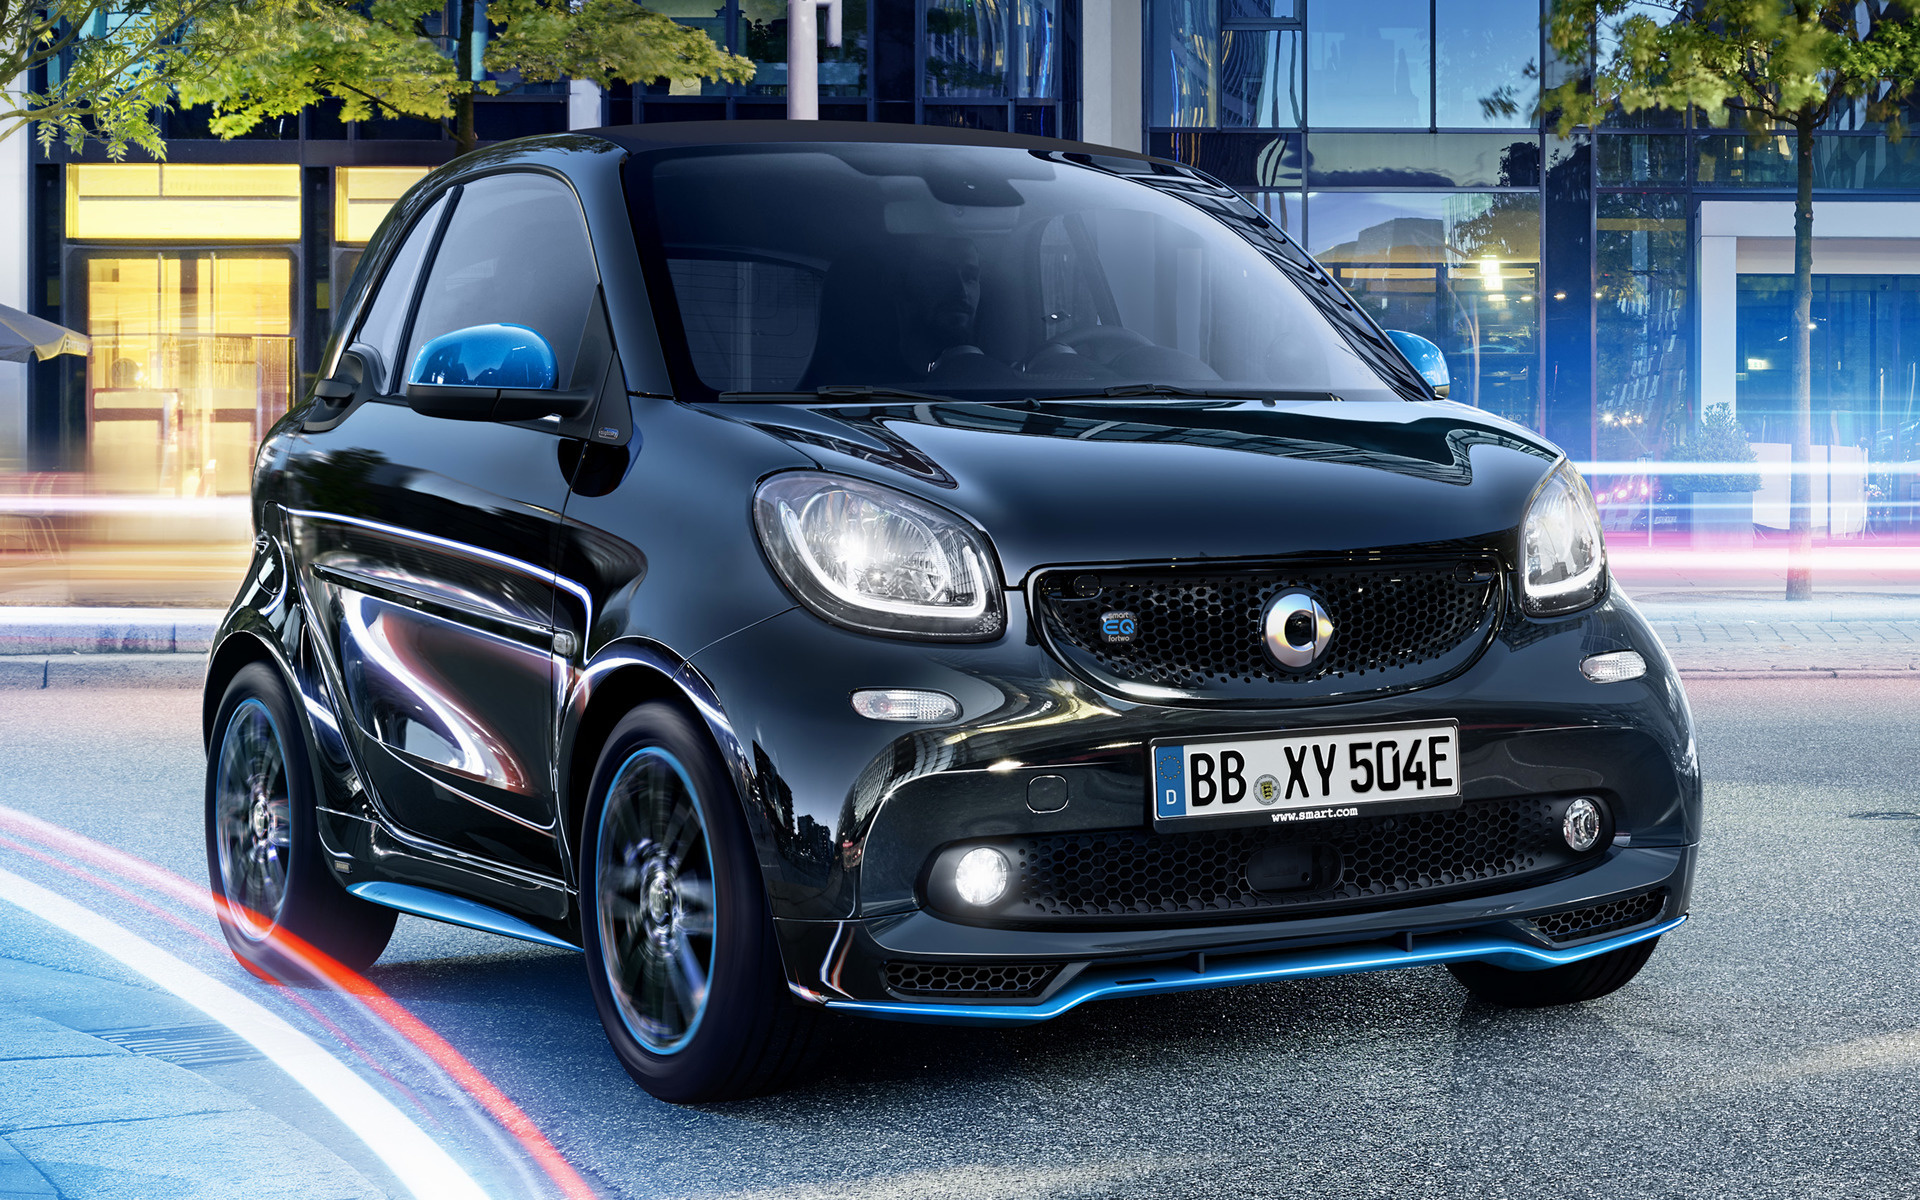 2018 Smart Eq Fortwo Nightsky Edition Wallpapers And Hd